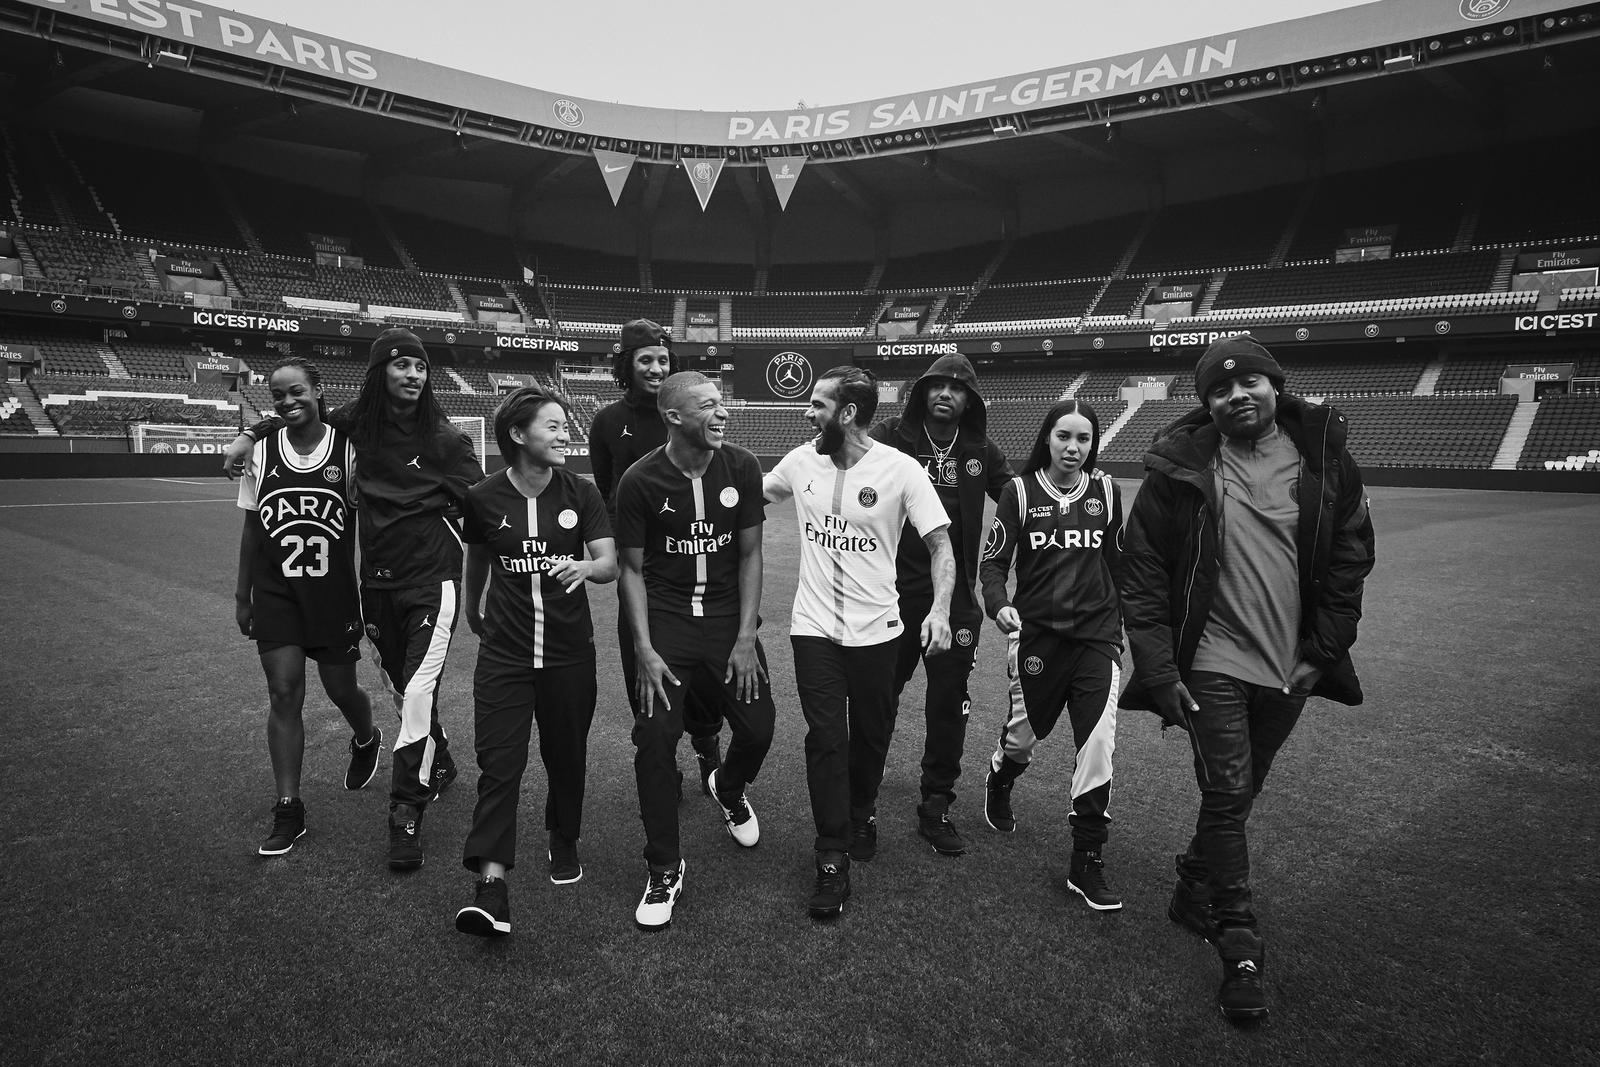 6b1a28717a0 Jordan Brand and Paris Saint-Germain Combine for a Football First ...